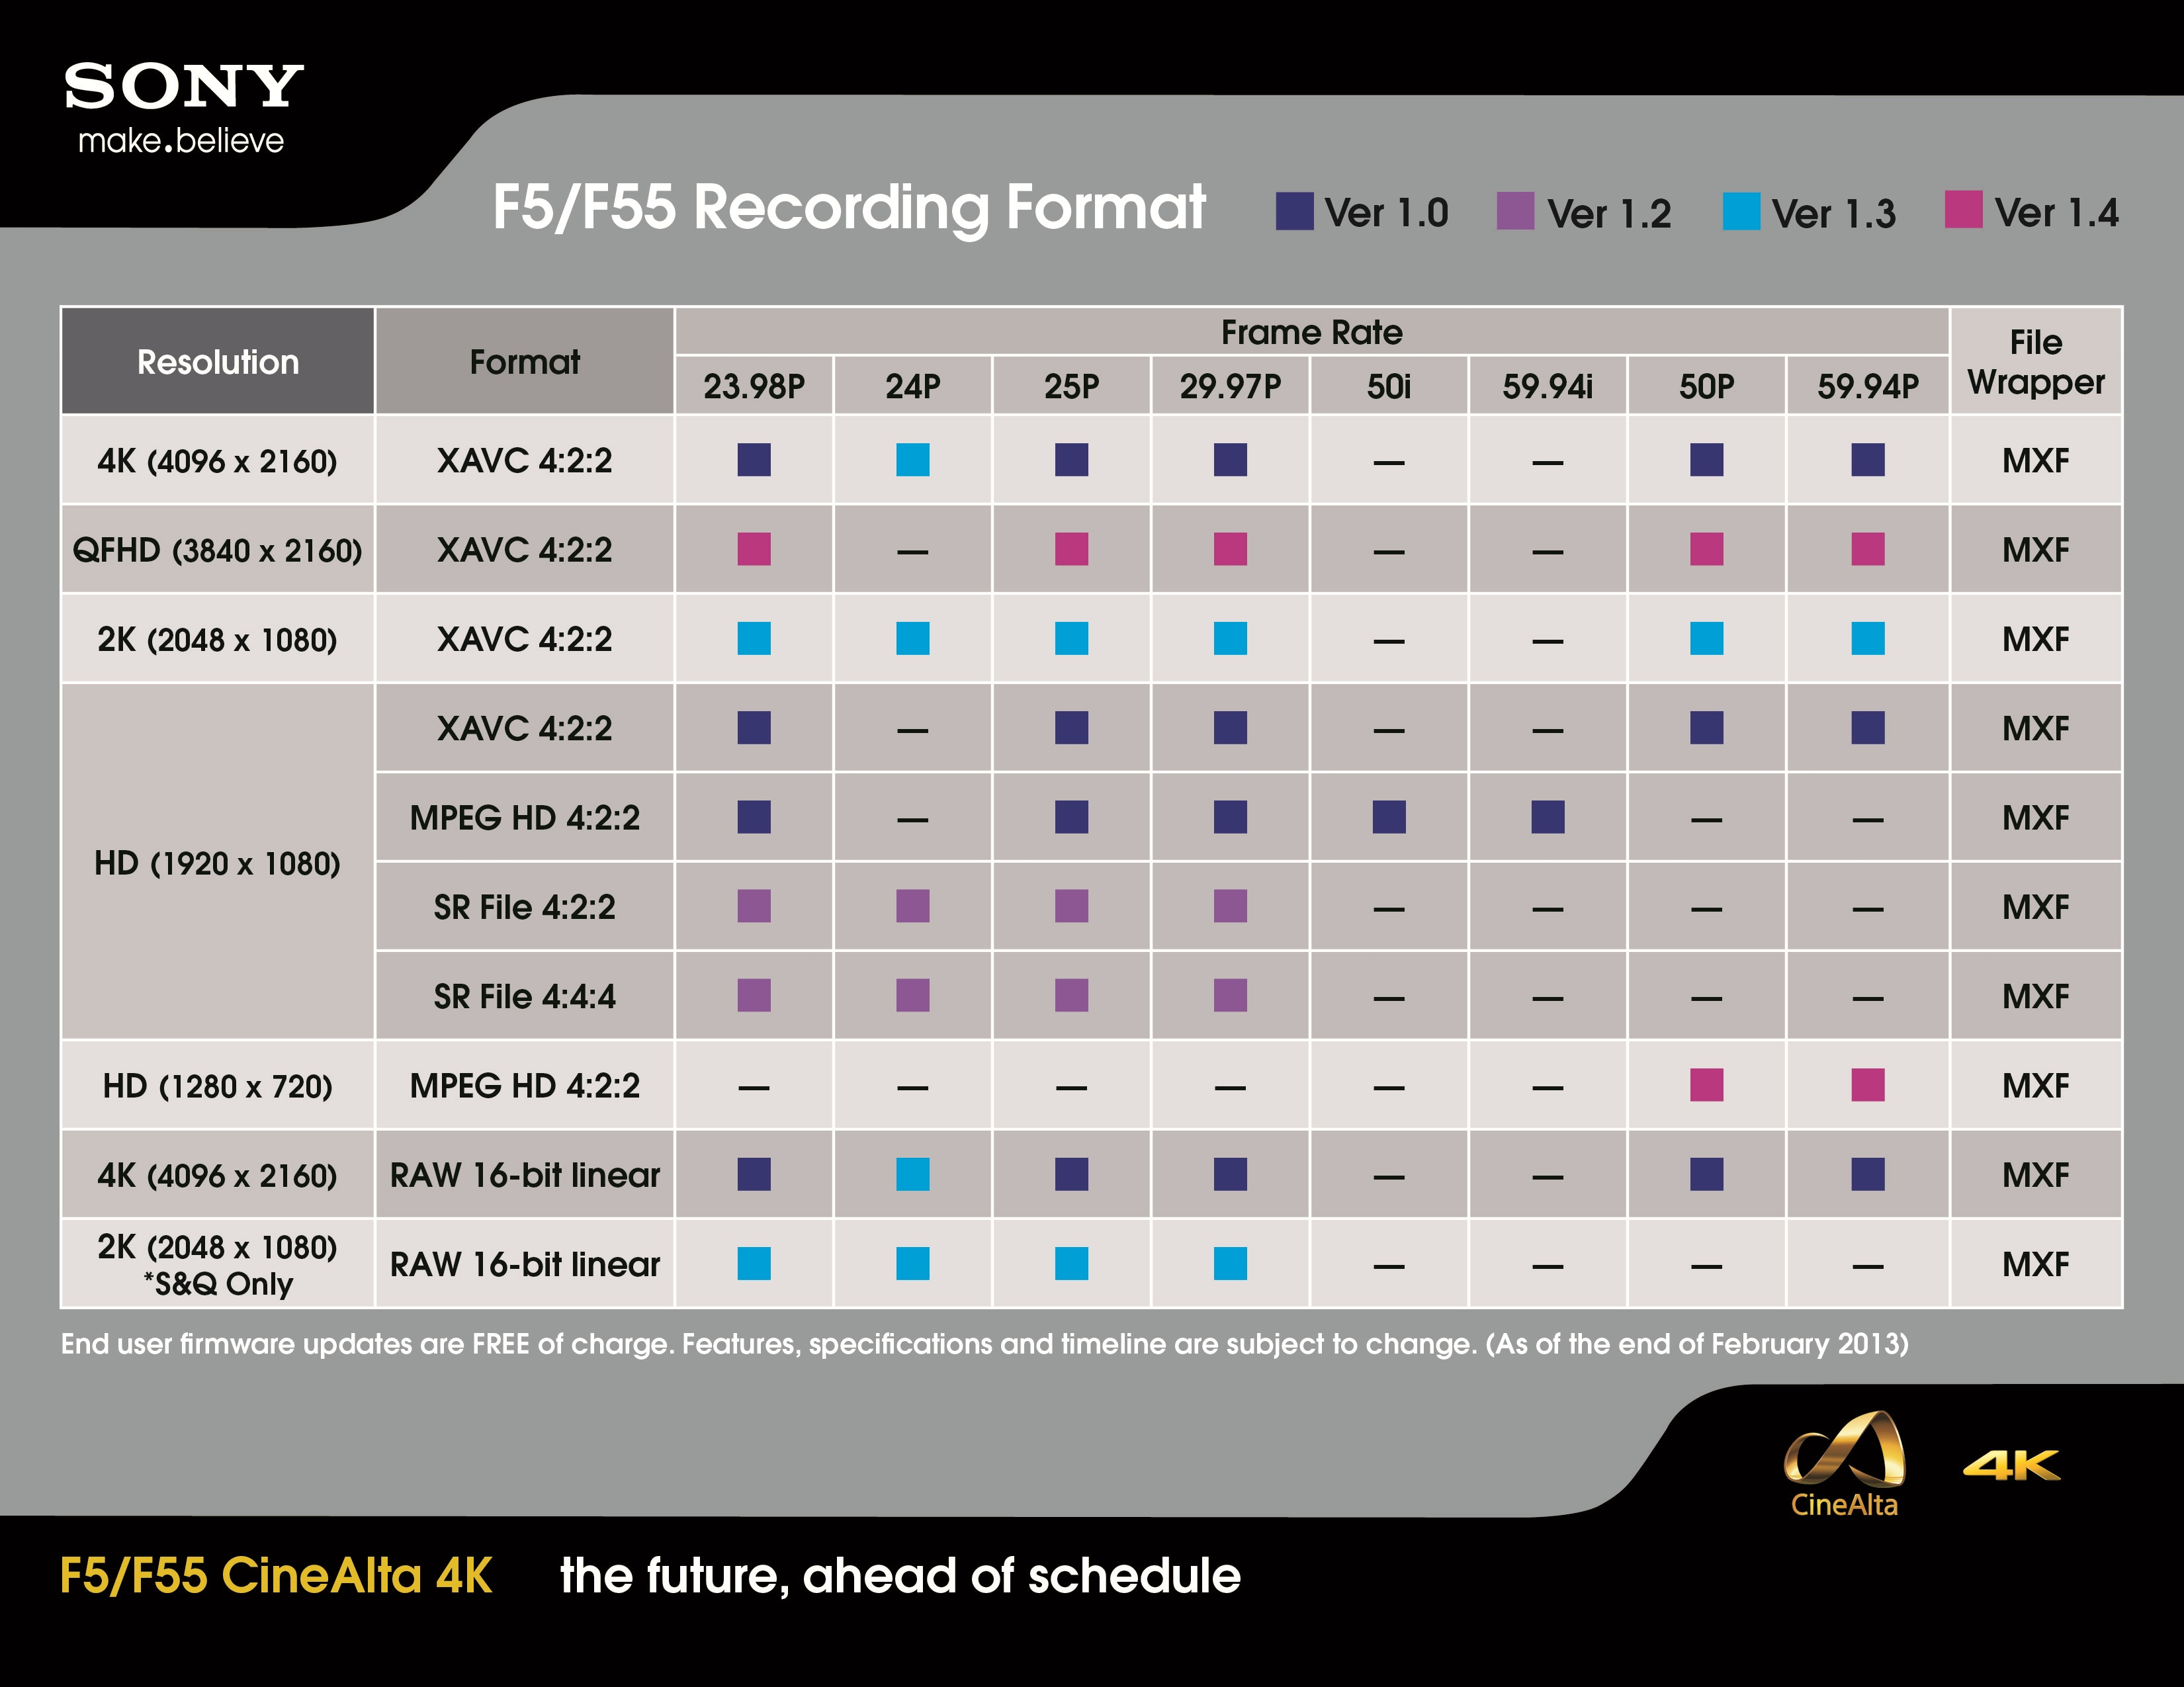 sony fs700 4k recorder support coming in july and complete f5 f55